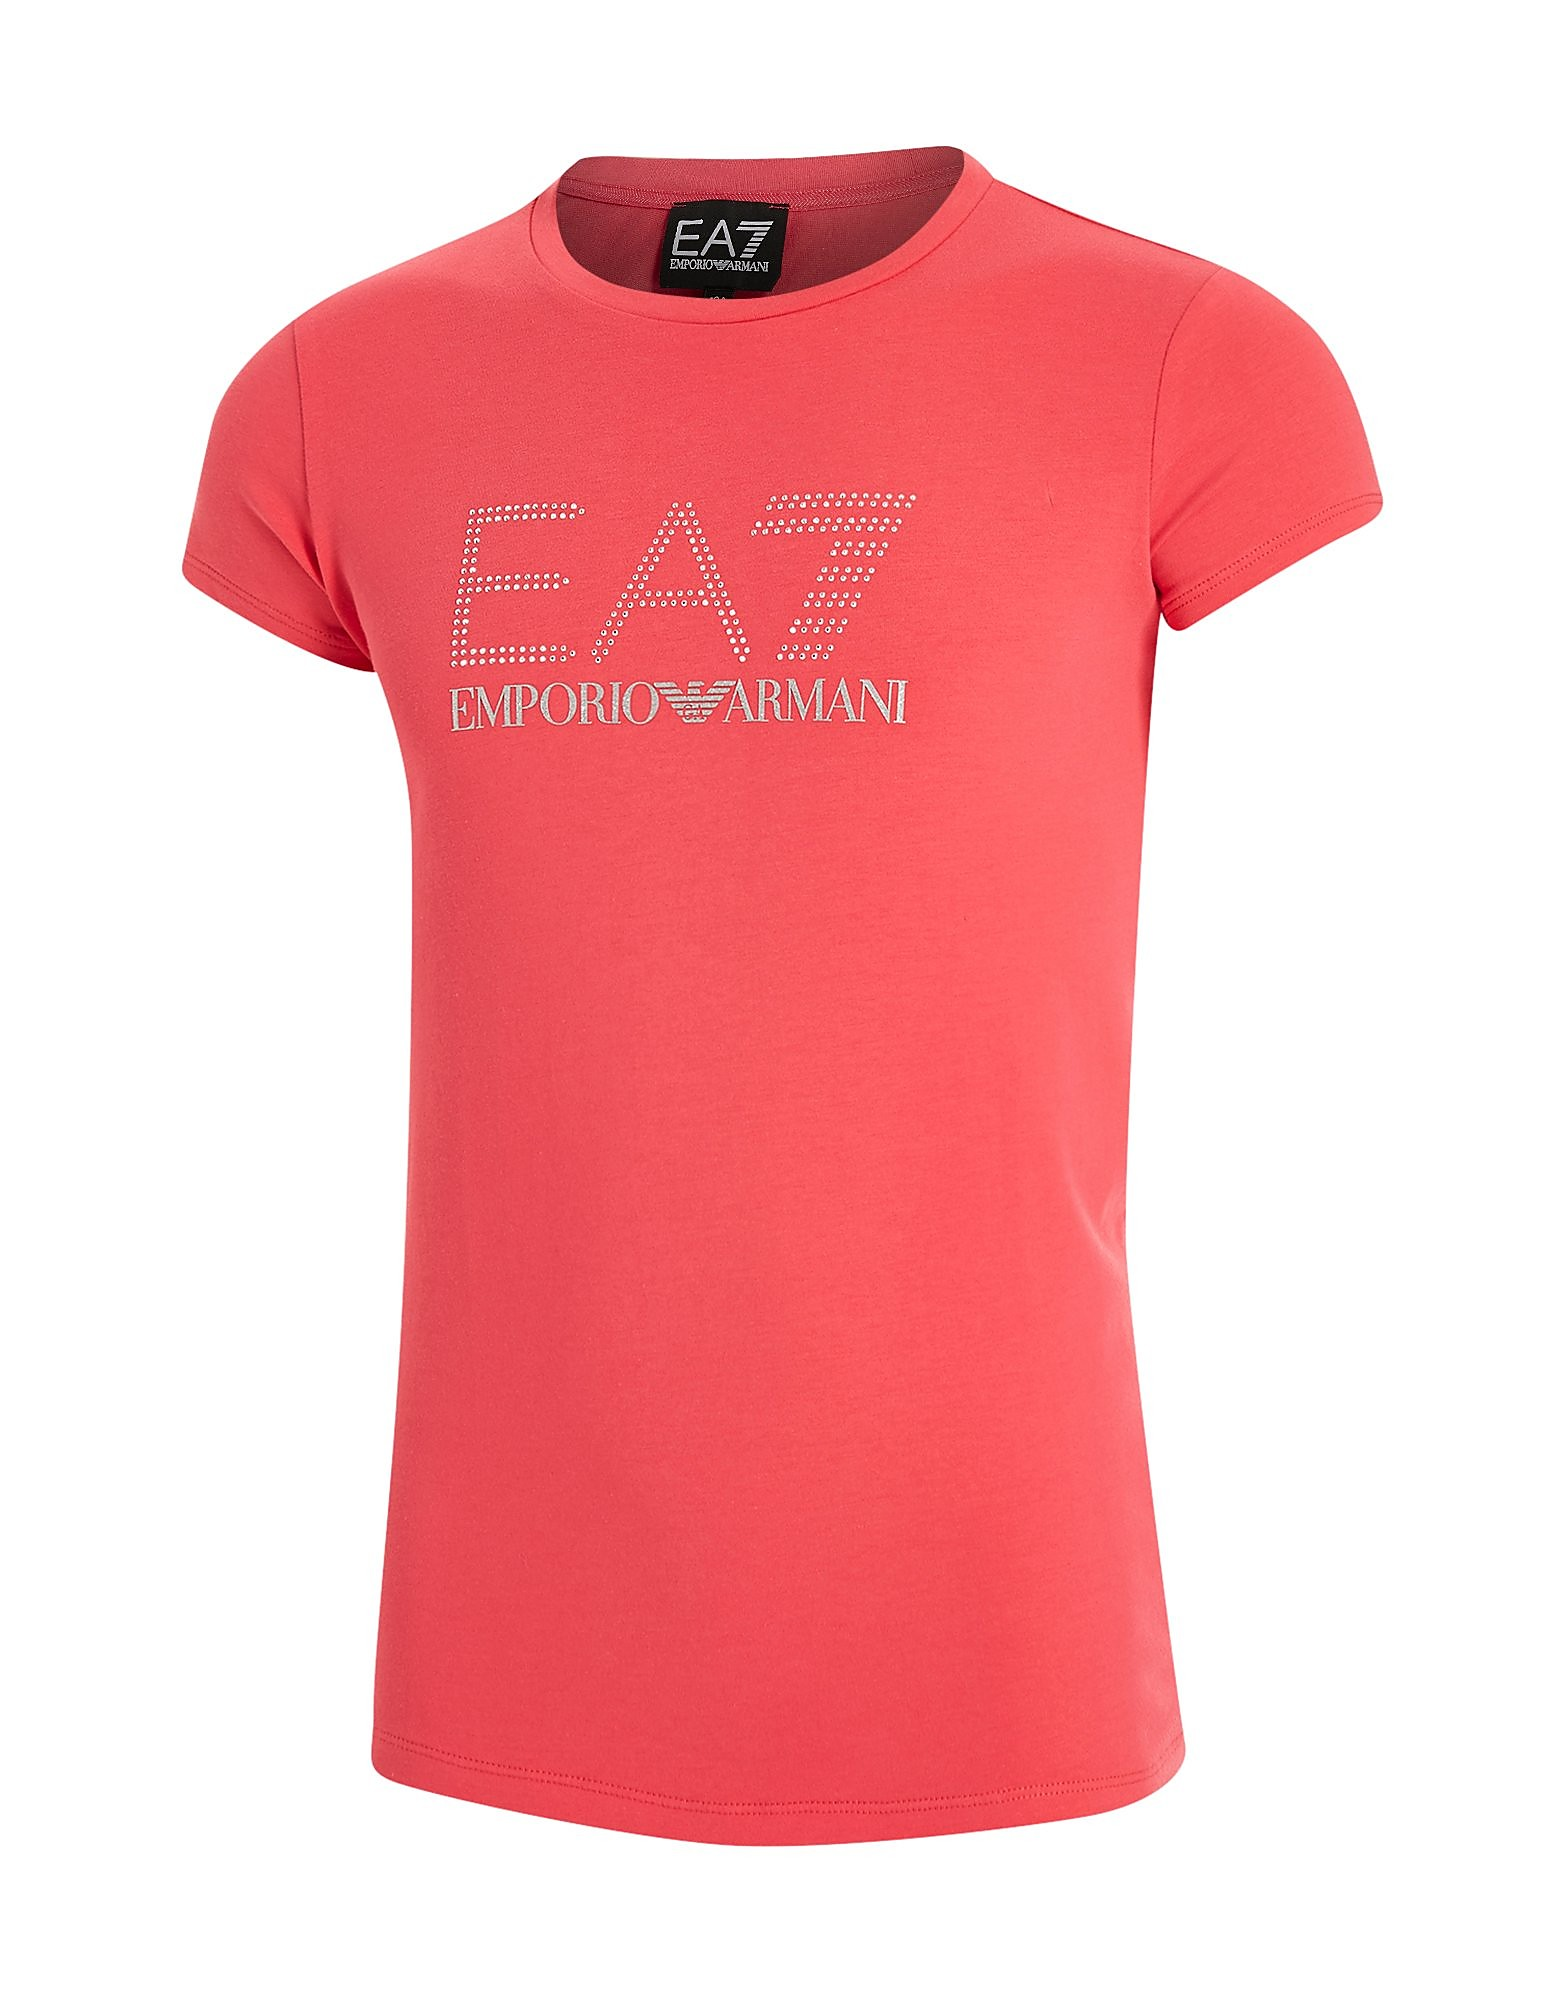 Emporio Armani EA7 Girls' Bling T-Shirt Junior